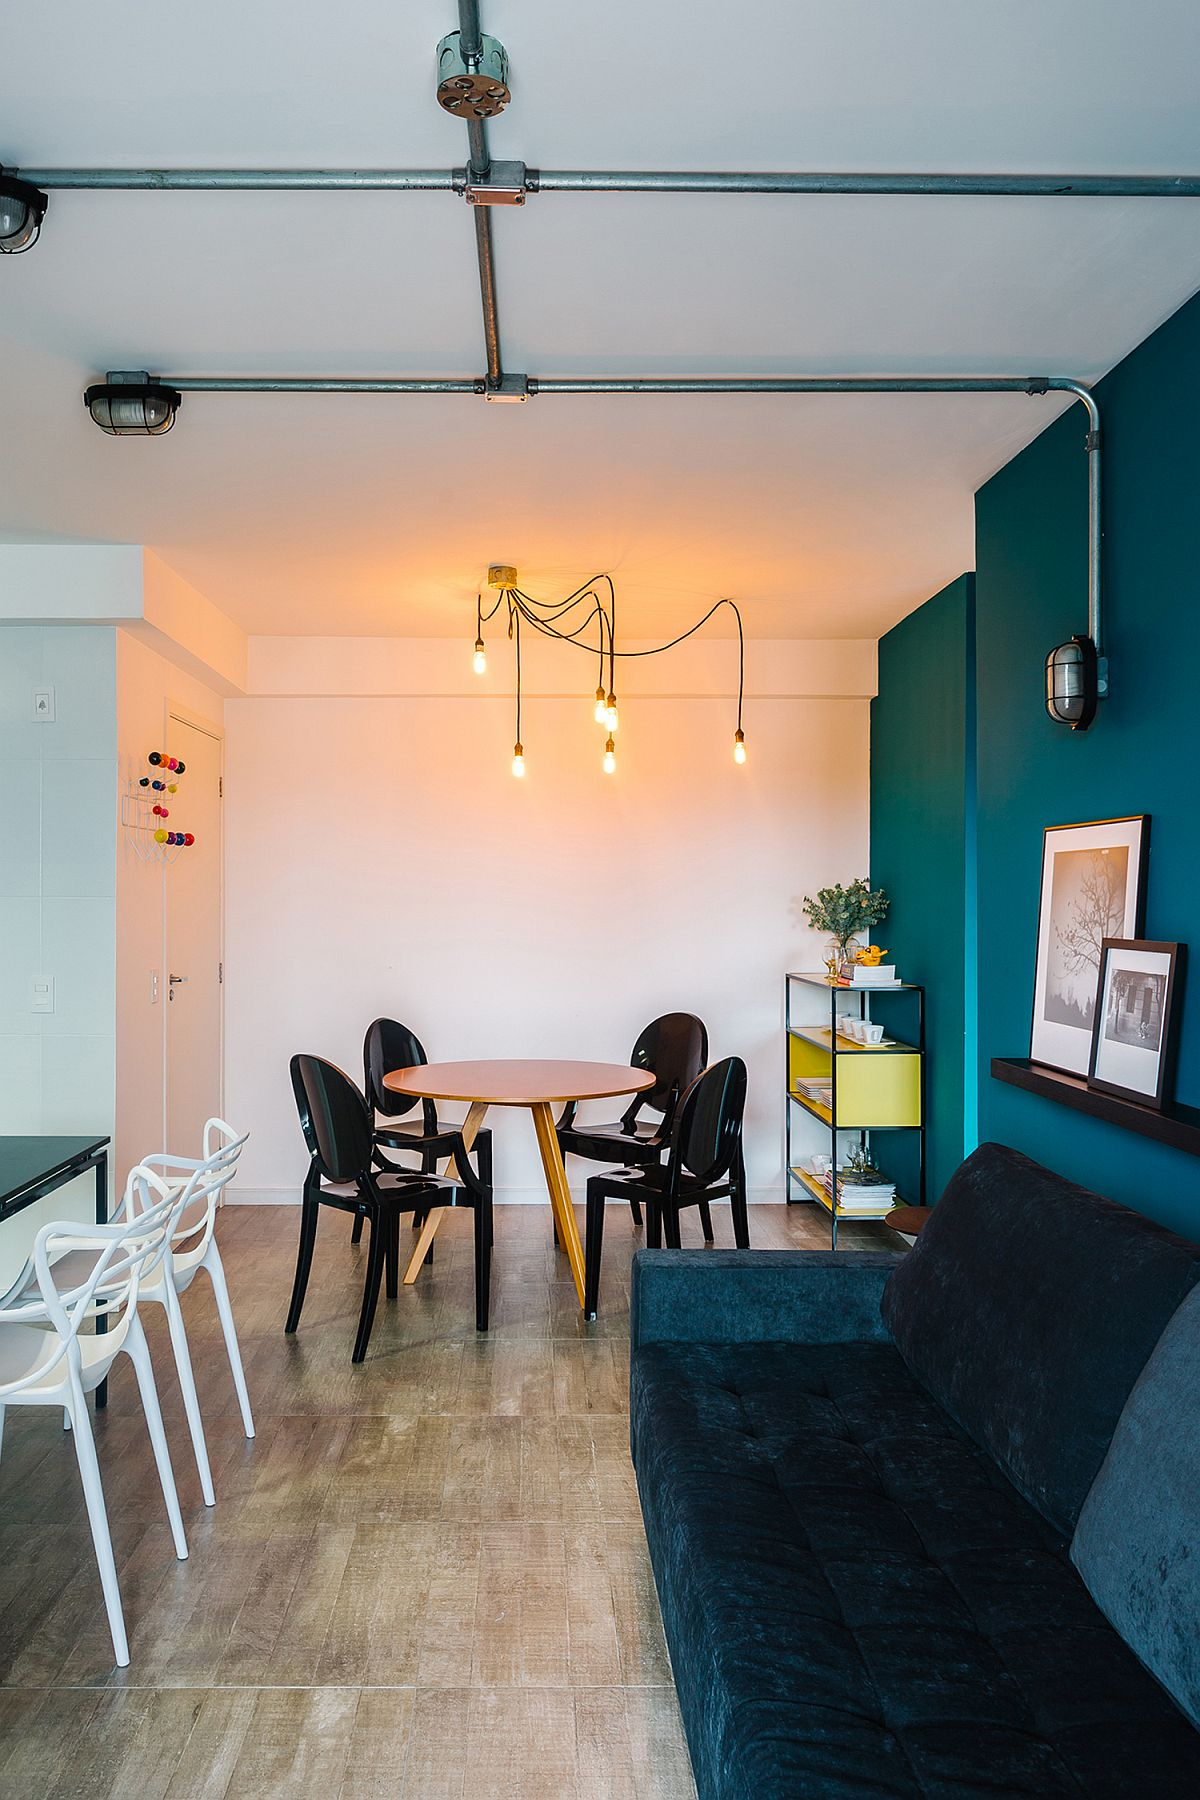 Spacious and stylish interior of the modern Brazilian apartment with lovely blue walls